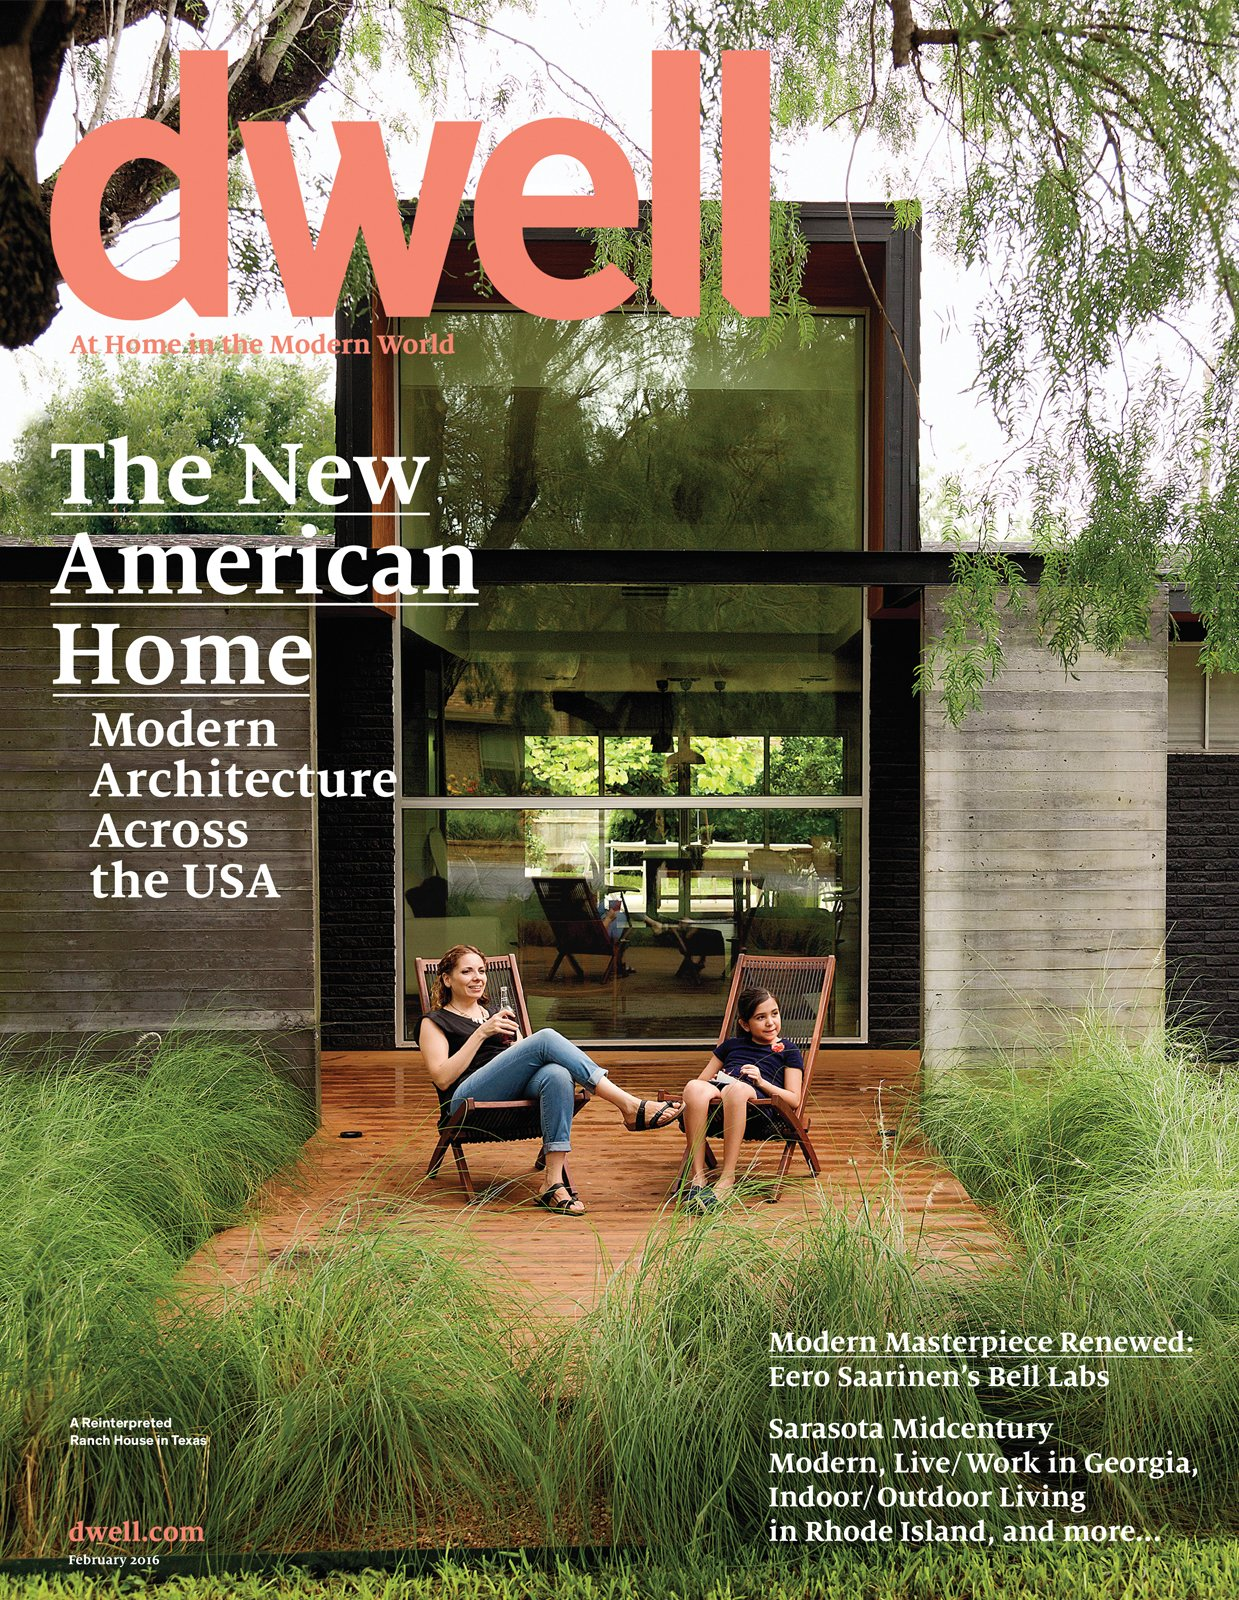 Modern Architecture Across the USA  Photo 10 of 11 in Dwell Magazine 2016 Issues